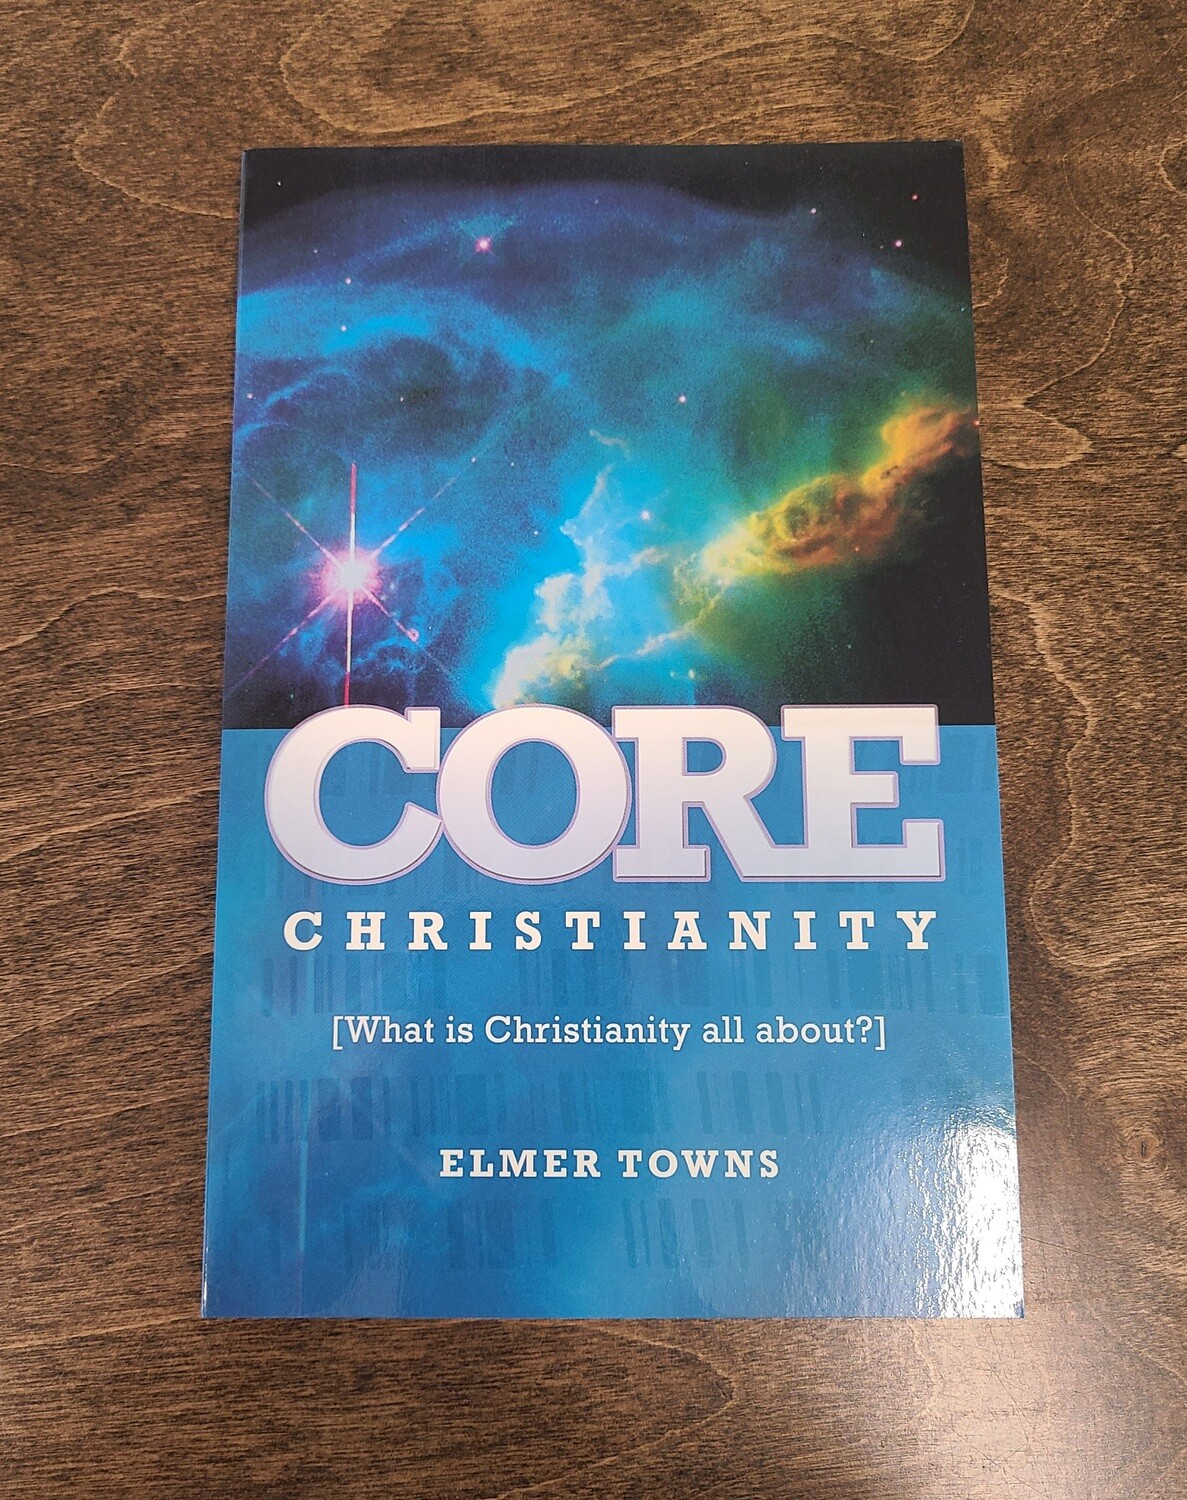 Core Christianity by Elmer Towns